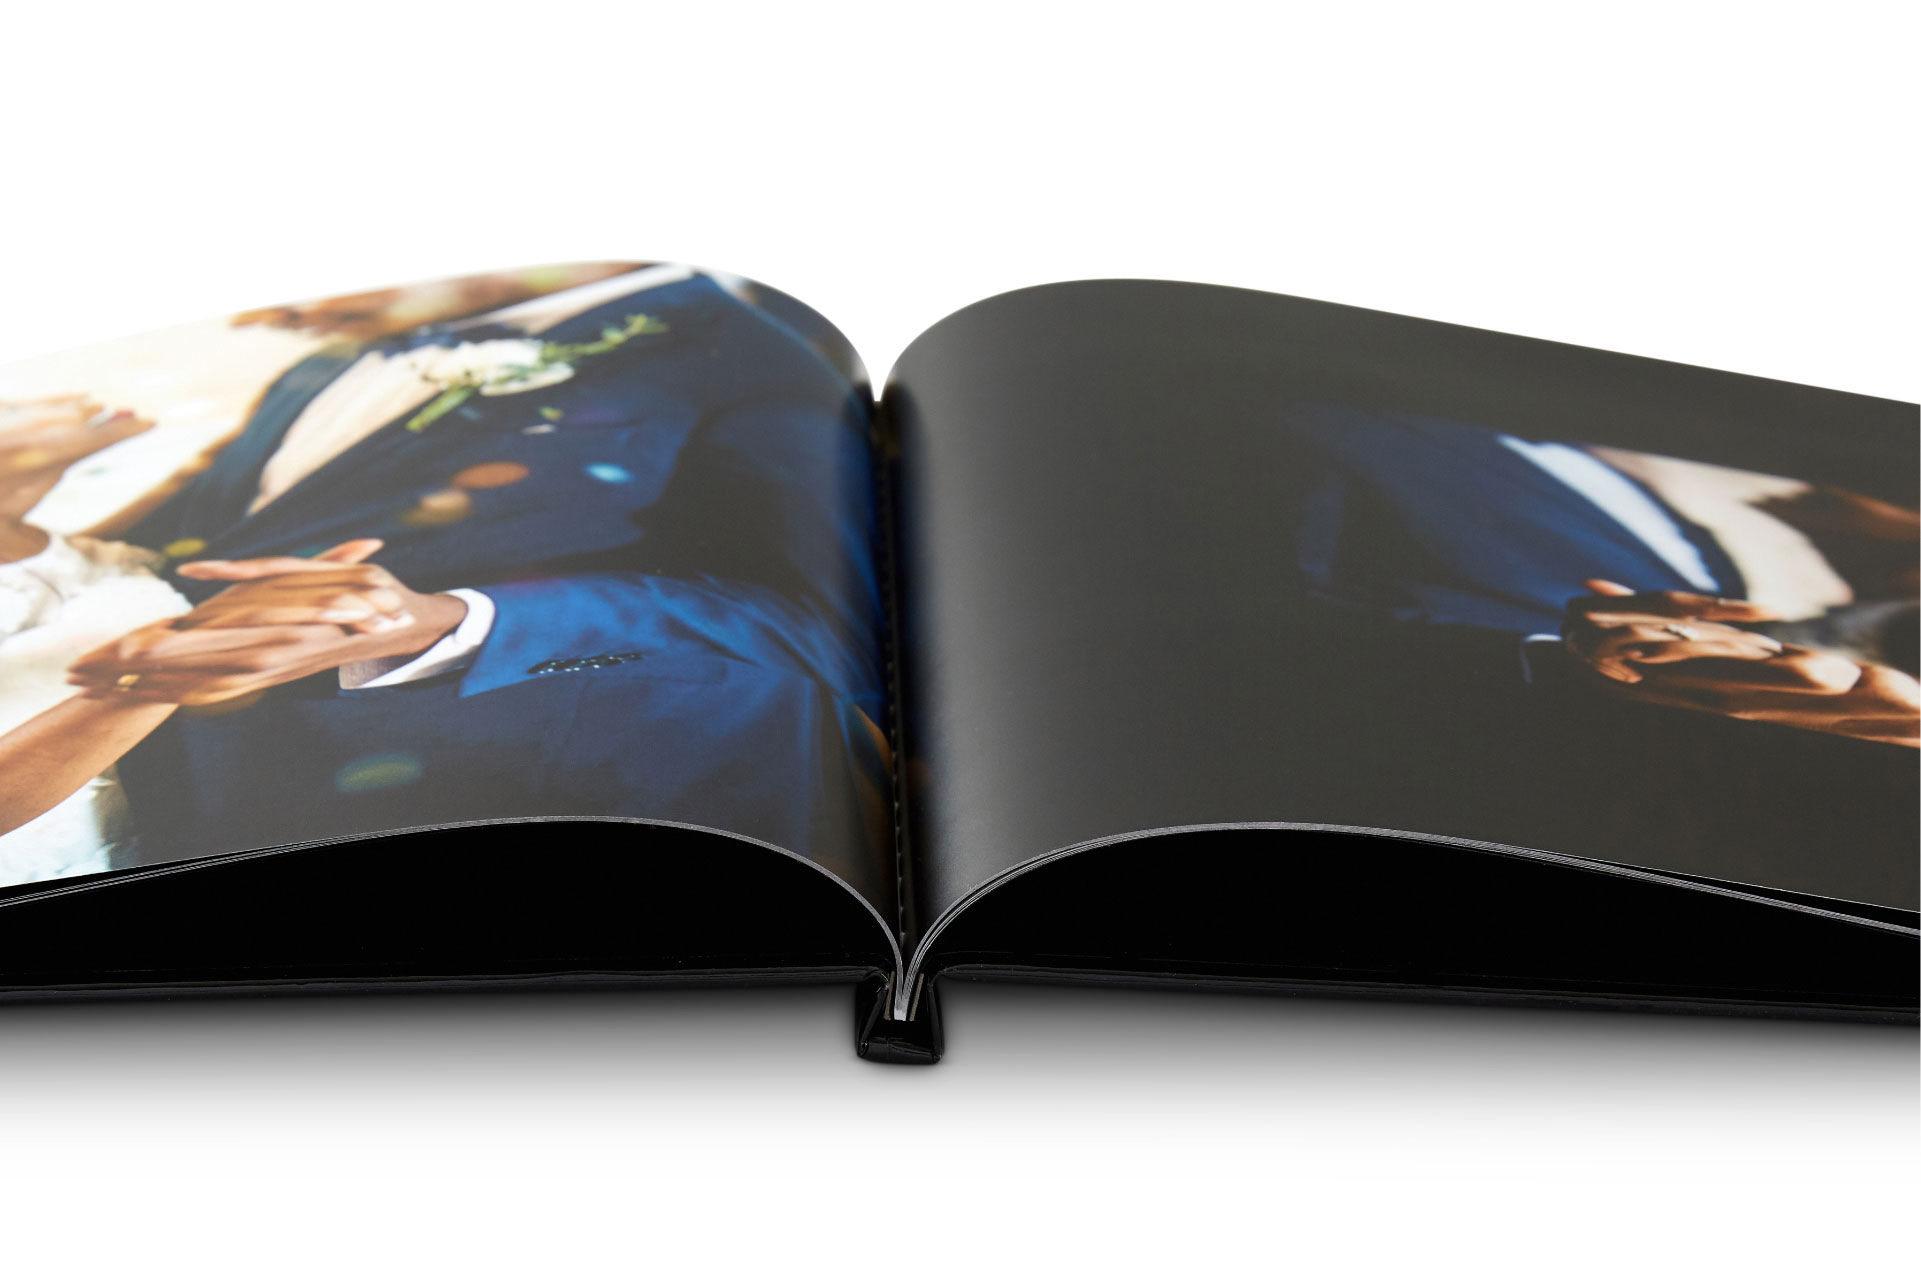 Custom Hard Cover Photo Books